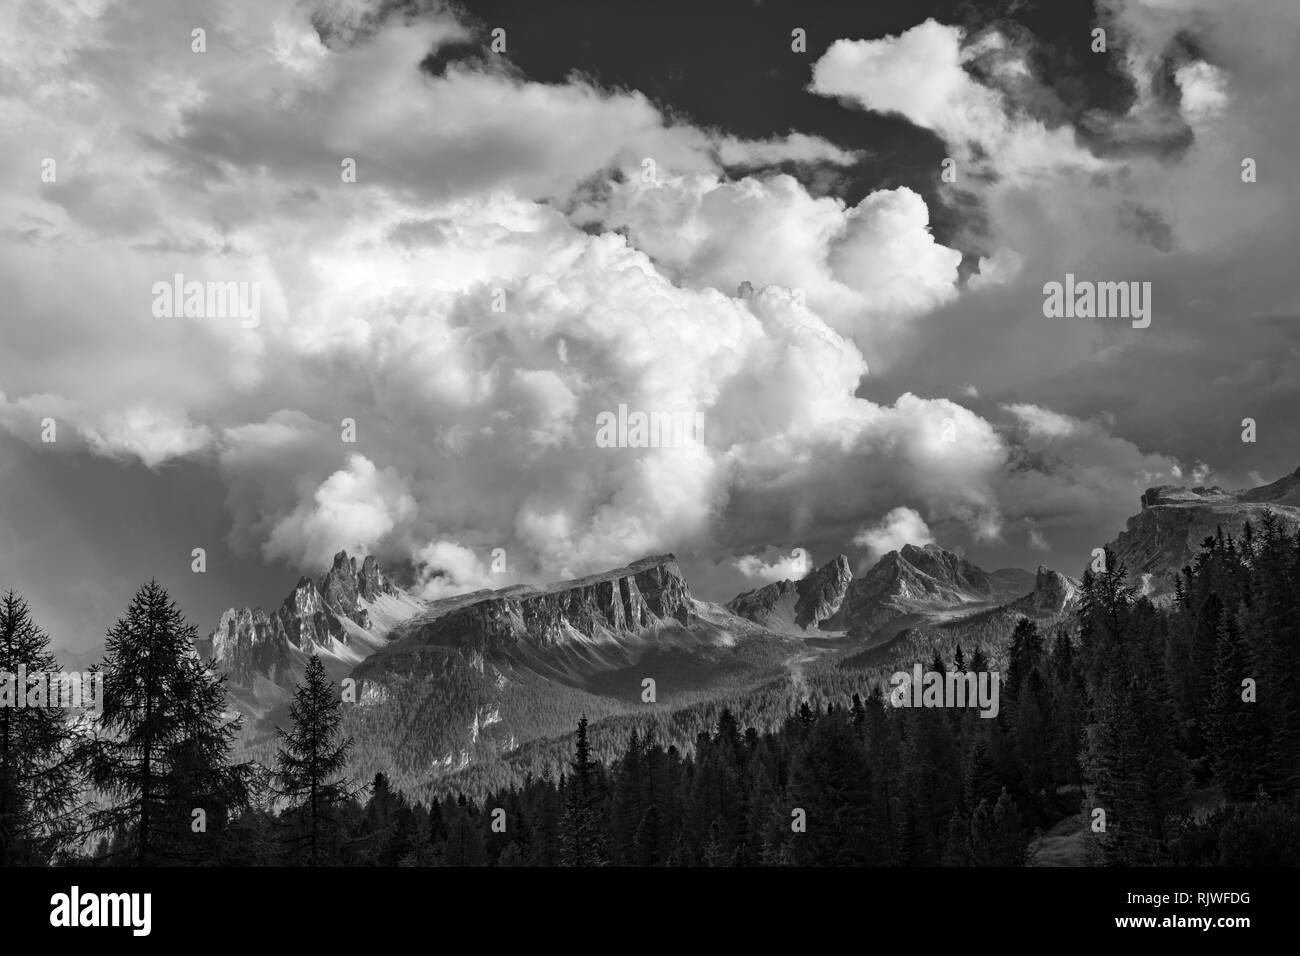 The Dolomites, Northern Italy. The peaks of the 2182m Crepe dei Ronde, Nuvolau (2575m) and Averau (2649m), seen before an advancing thunderstorm (b/w) - Stock Image